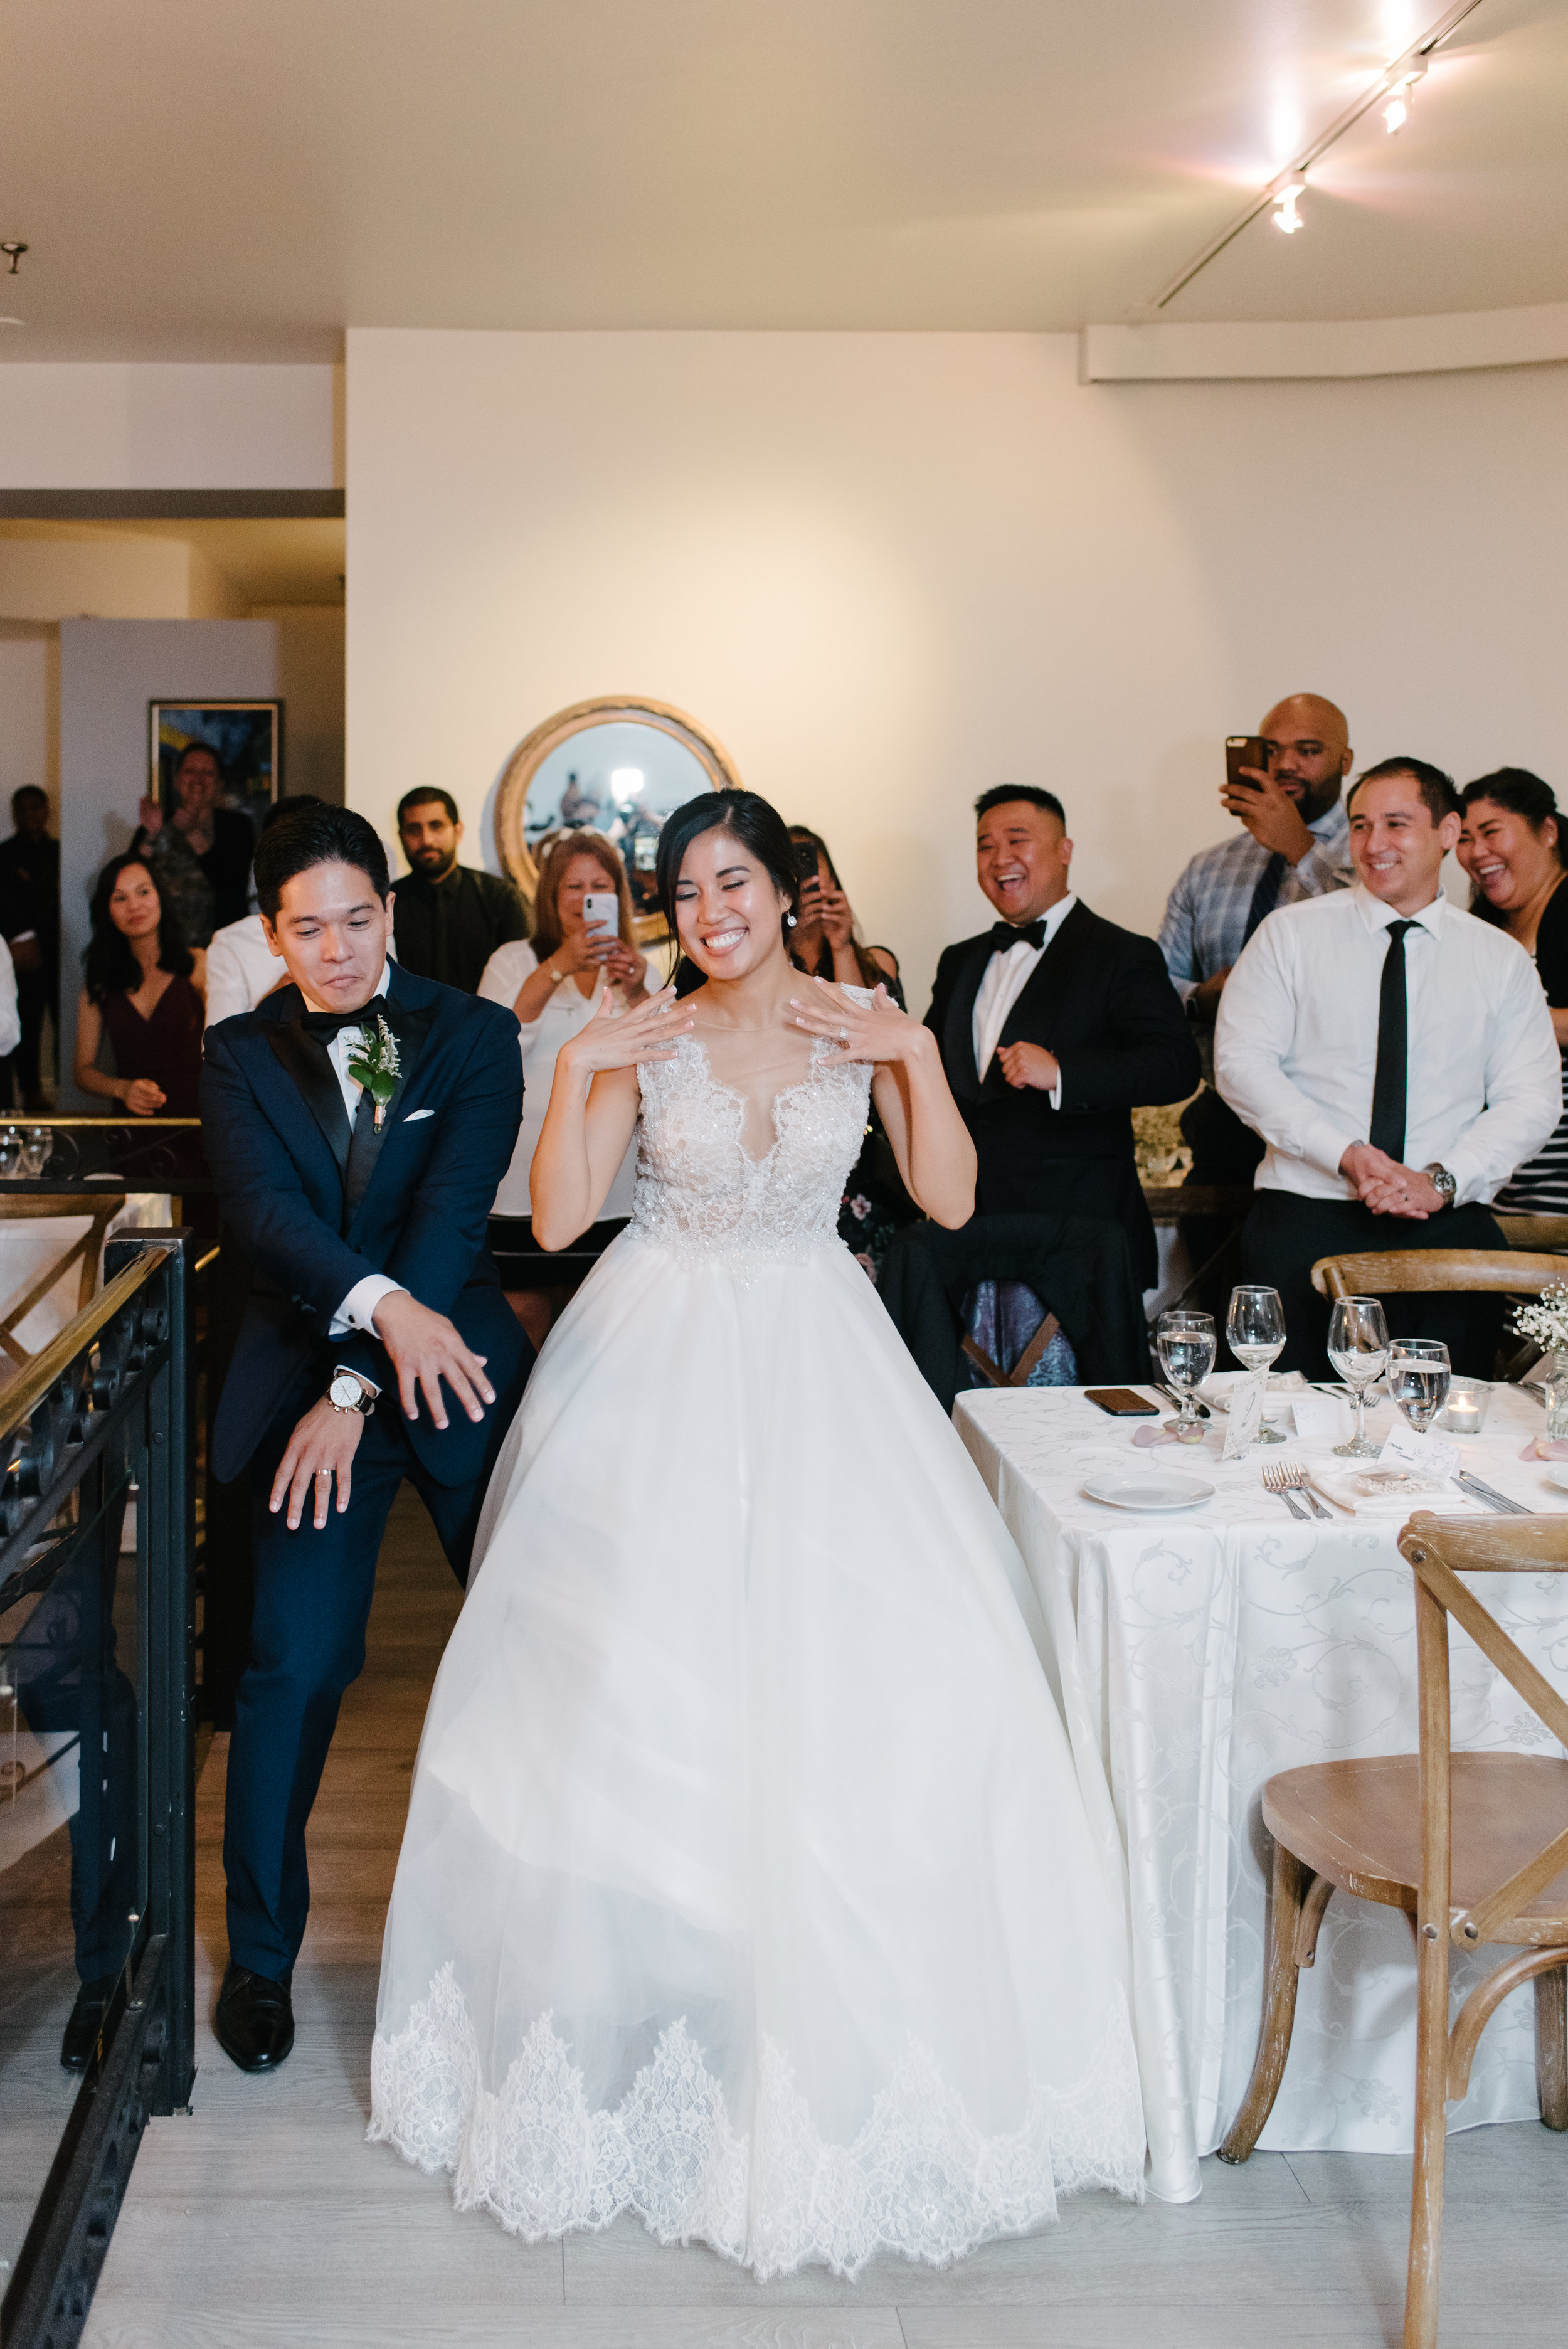 Photo Cred:  True Mate Weddings & Events